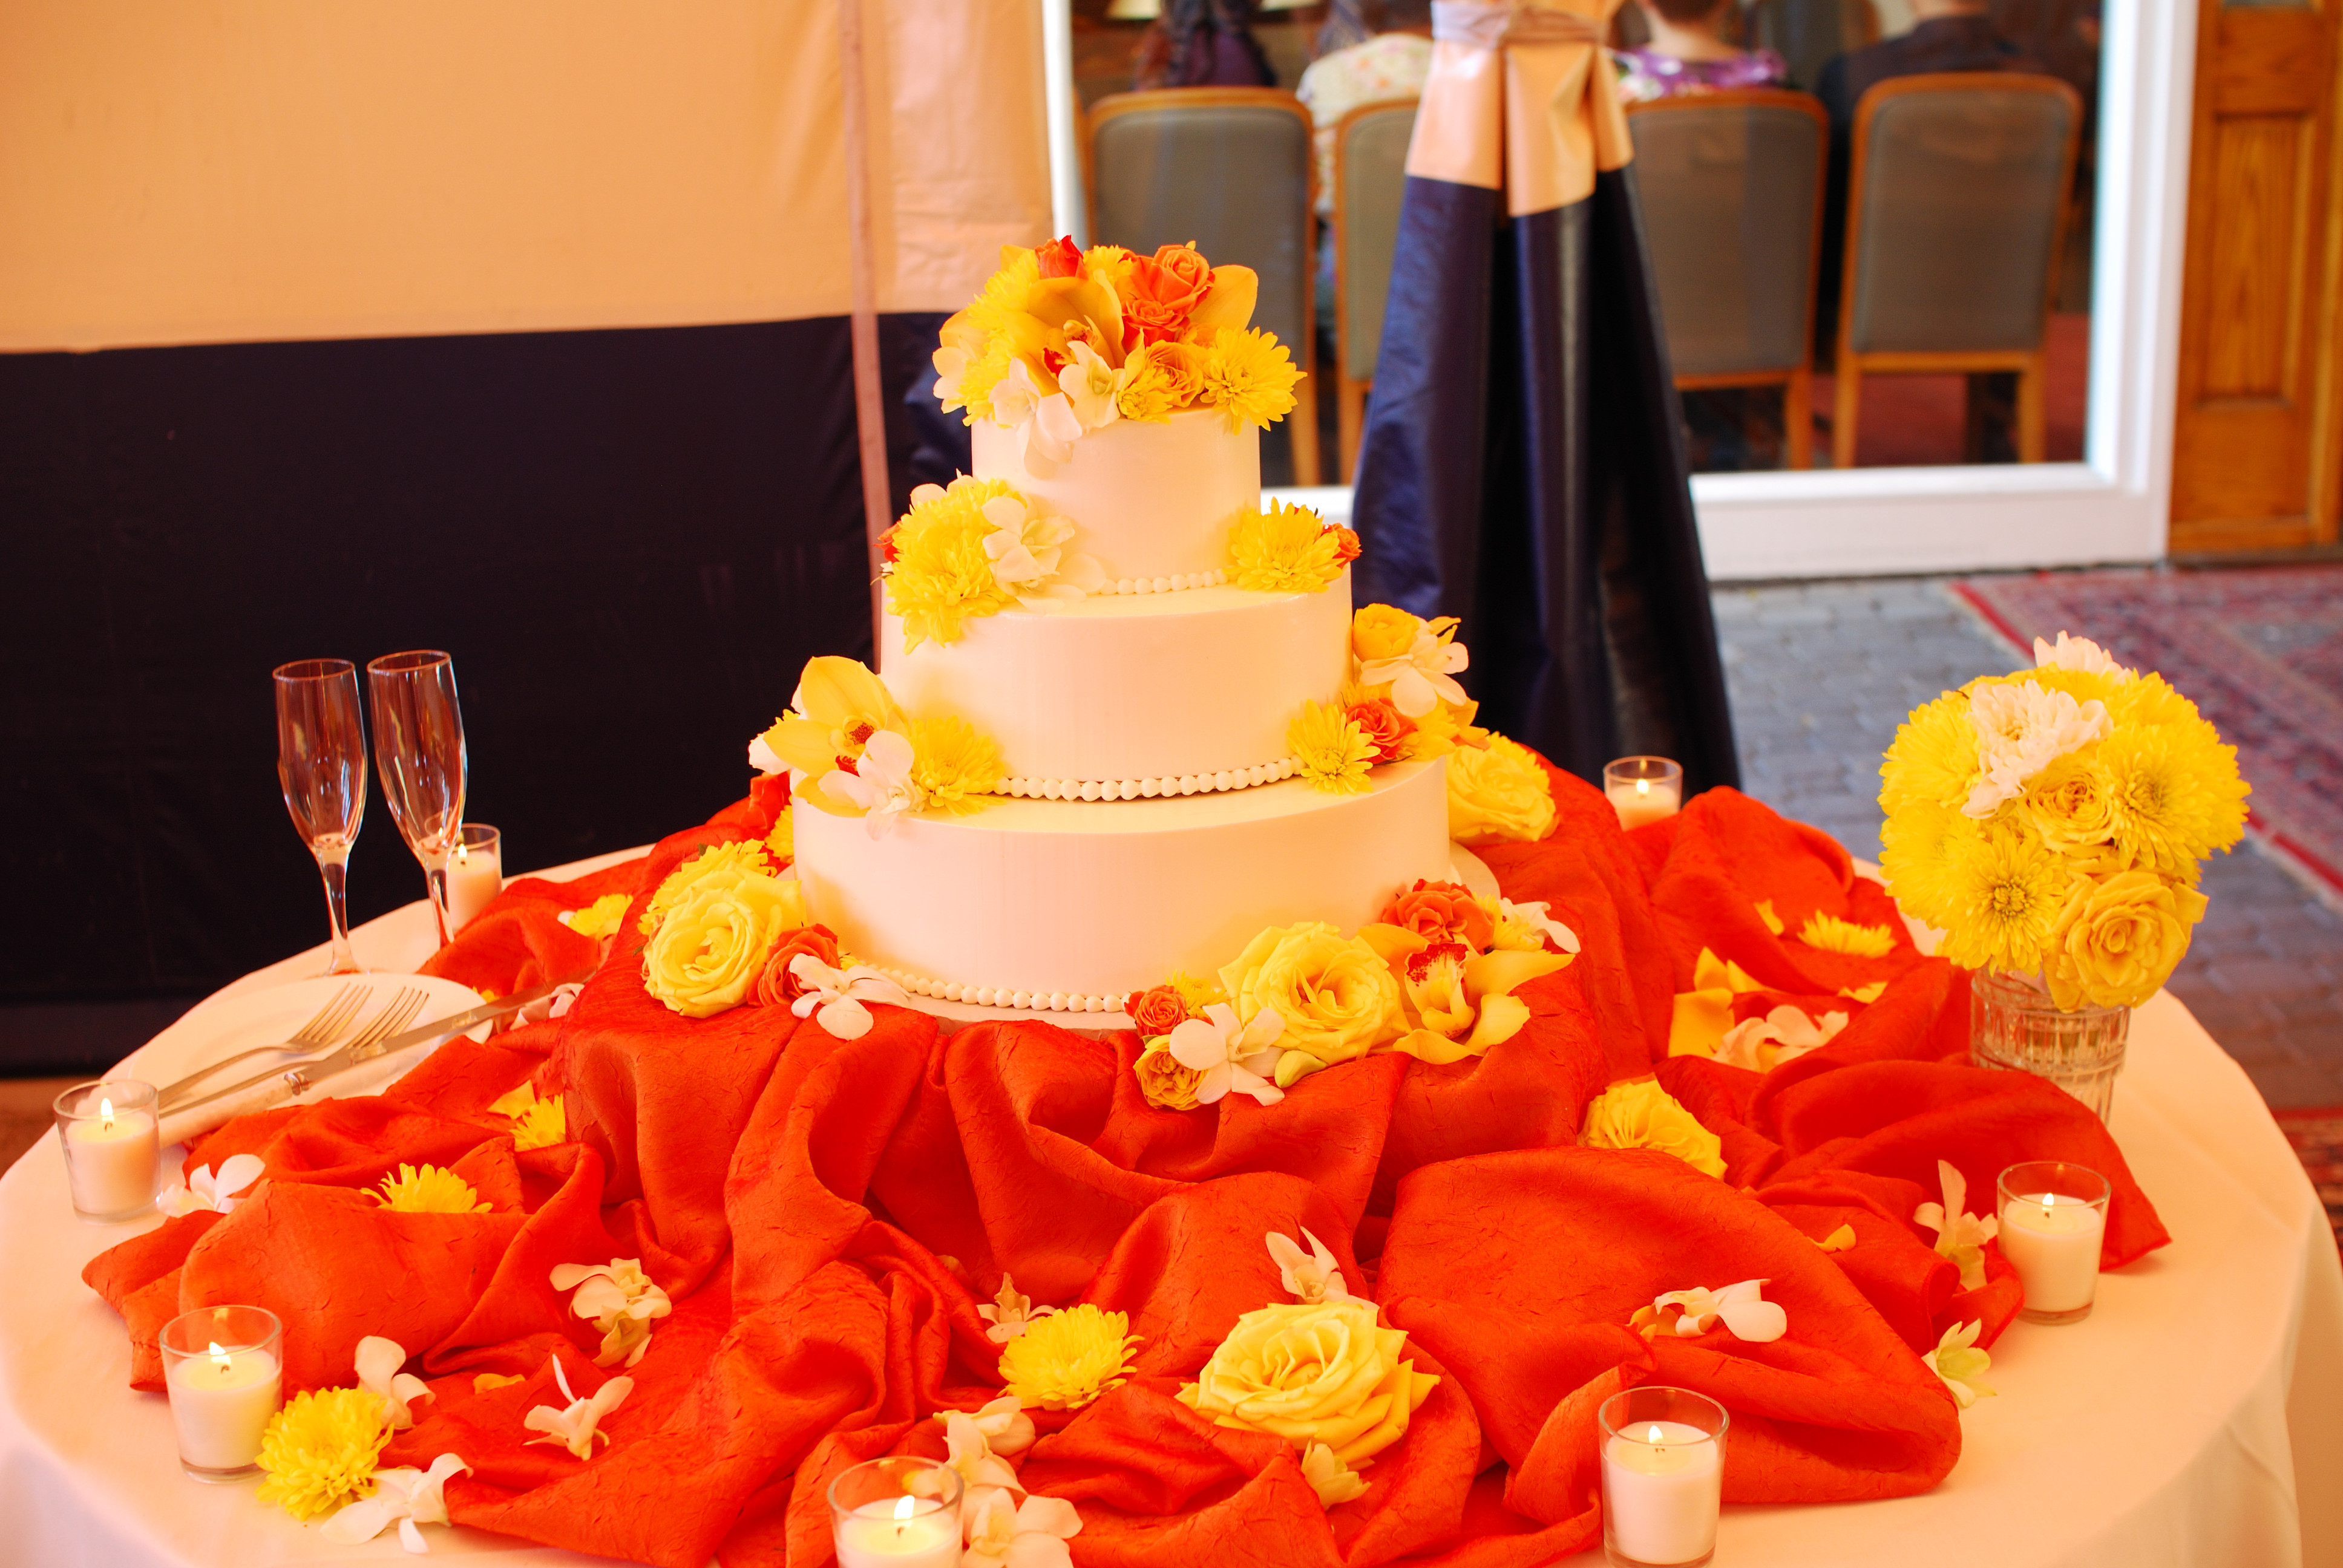 Reception, Flowers & Decor, Cakes, yellow, orange, cake, Flowers, Events by karen lee